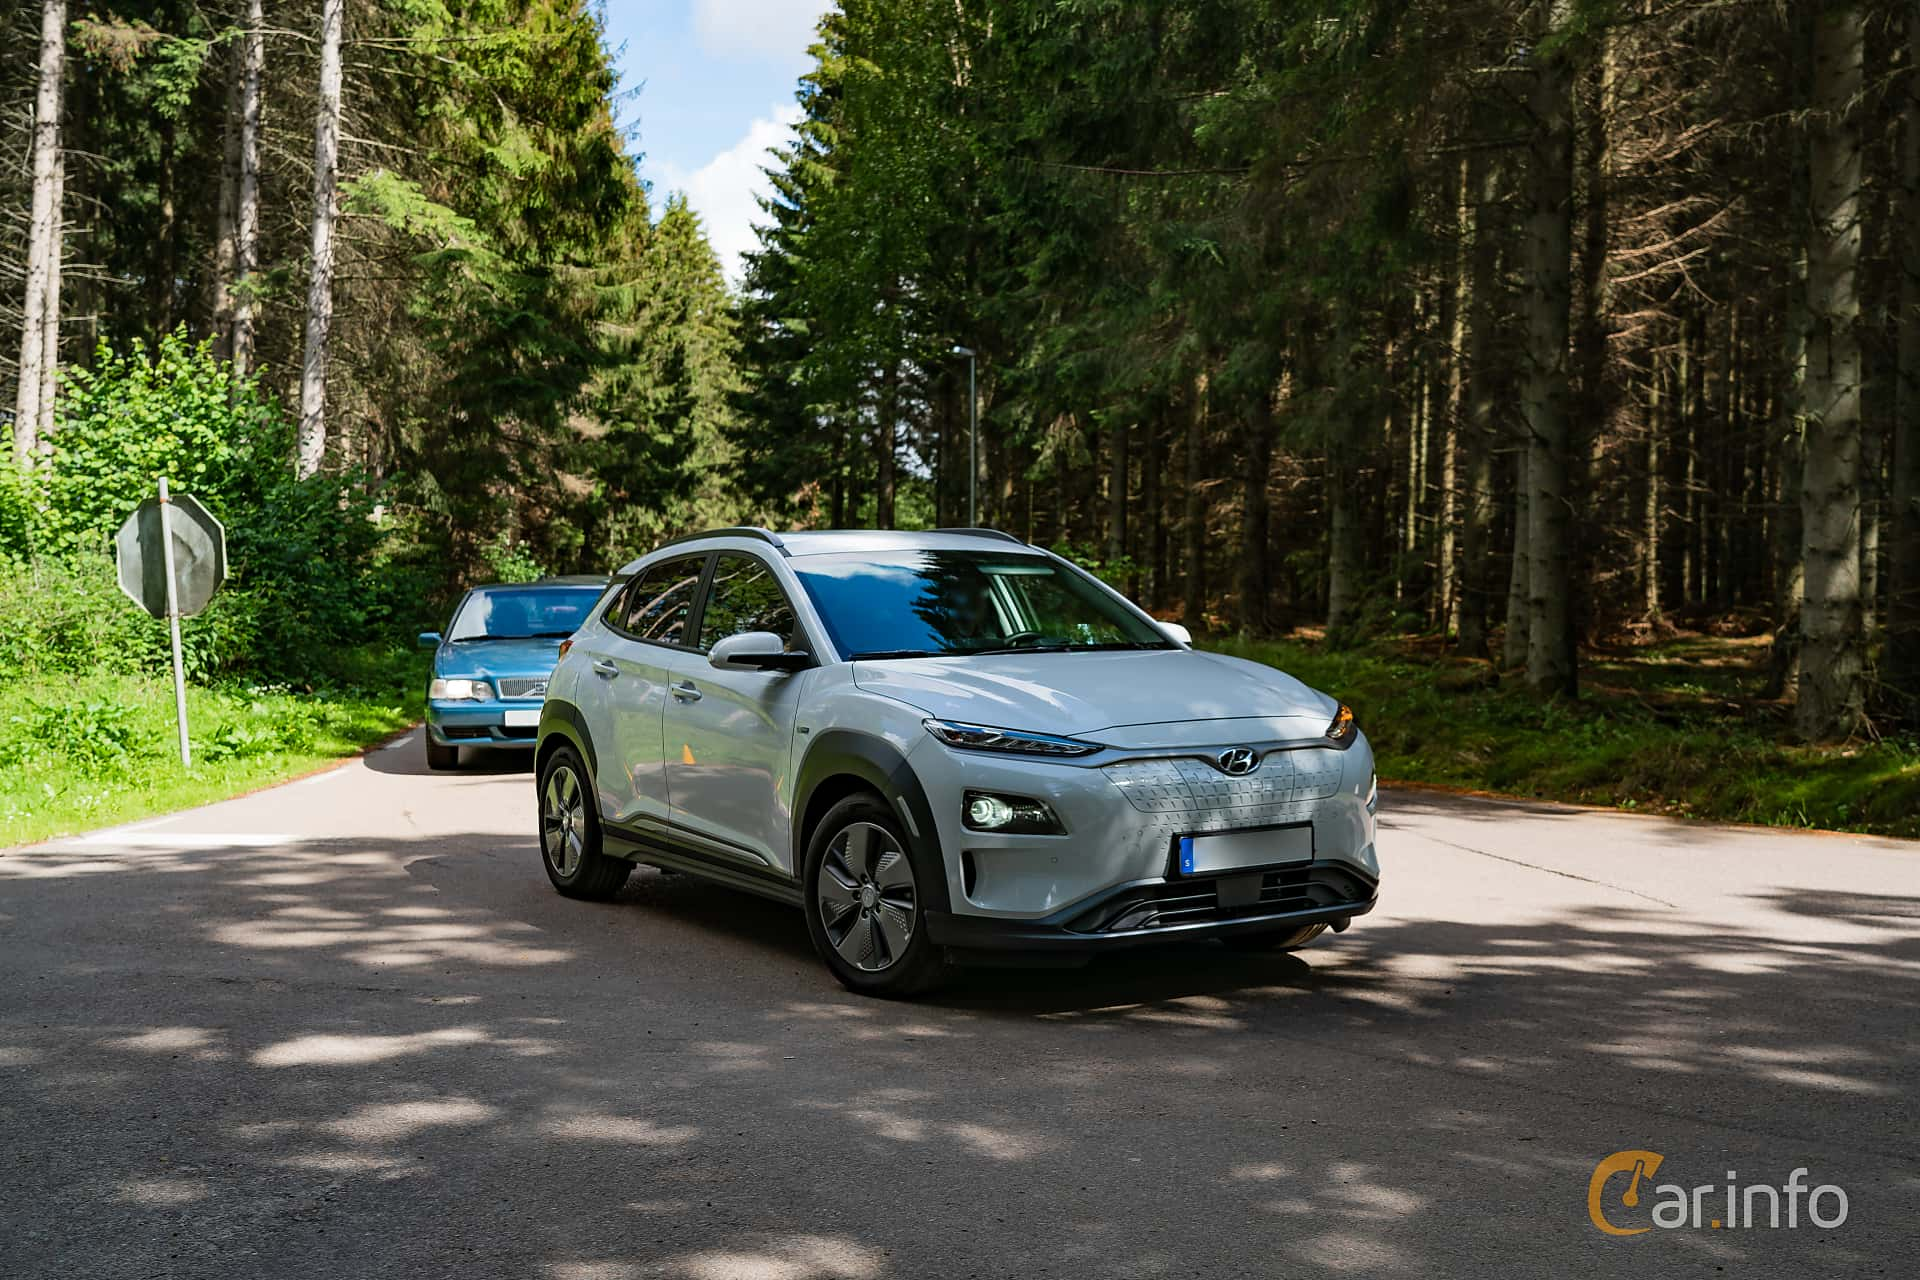 Hyundai Kona Electric 64 kWh Single Speed, 204hp, 2019 at Svenskt sportvagnsmeeting 2019